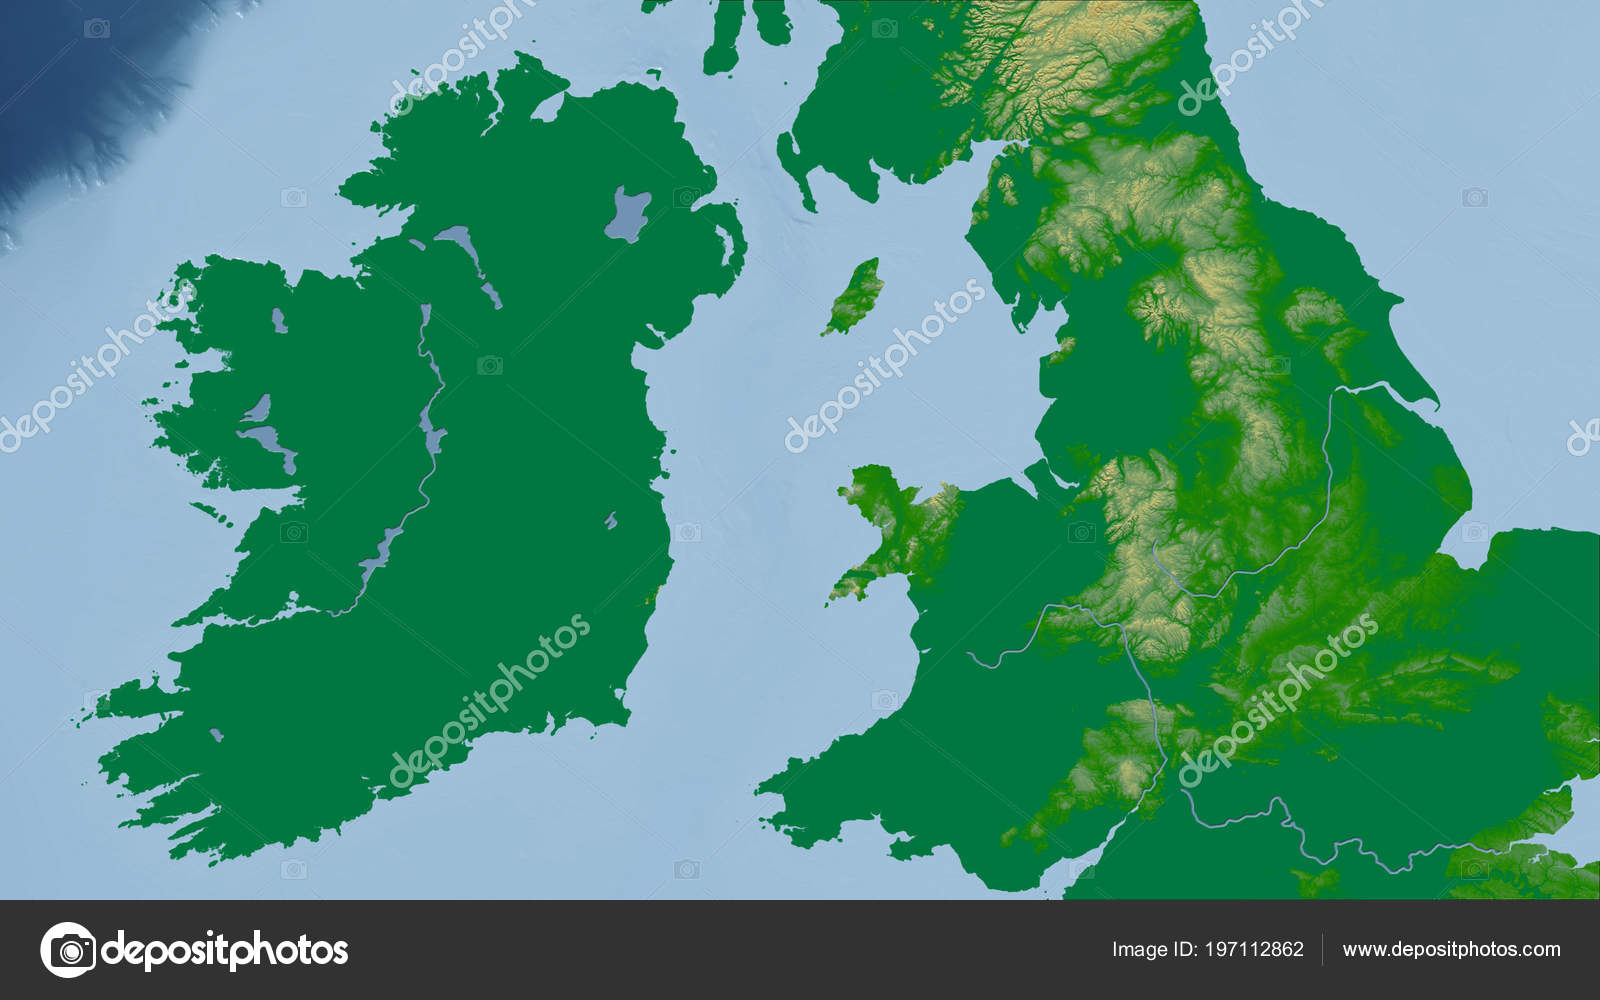 Physical Map Of Ireland.Ireland Close Perspective Country Outline Color Physical Map Stock